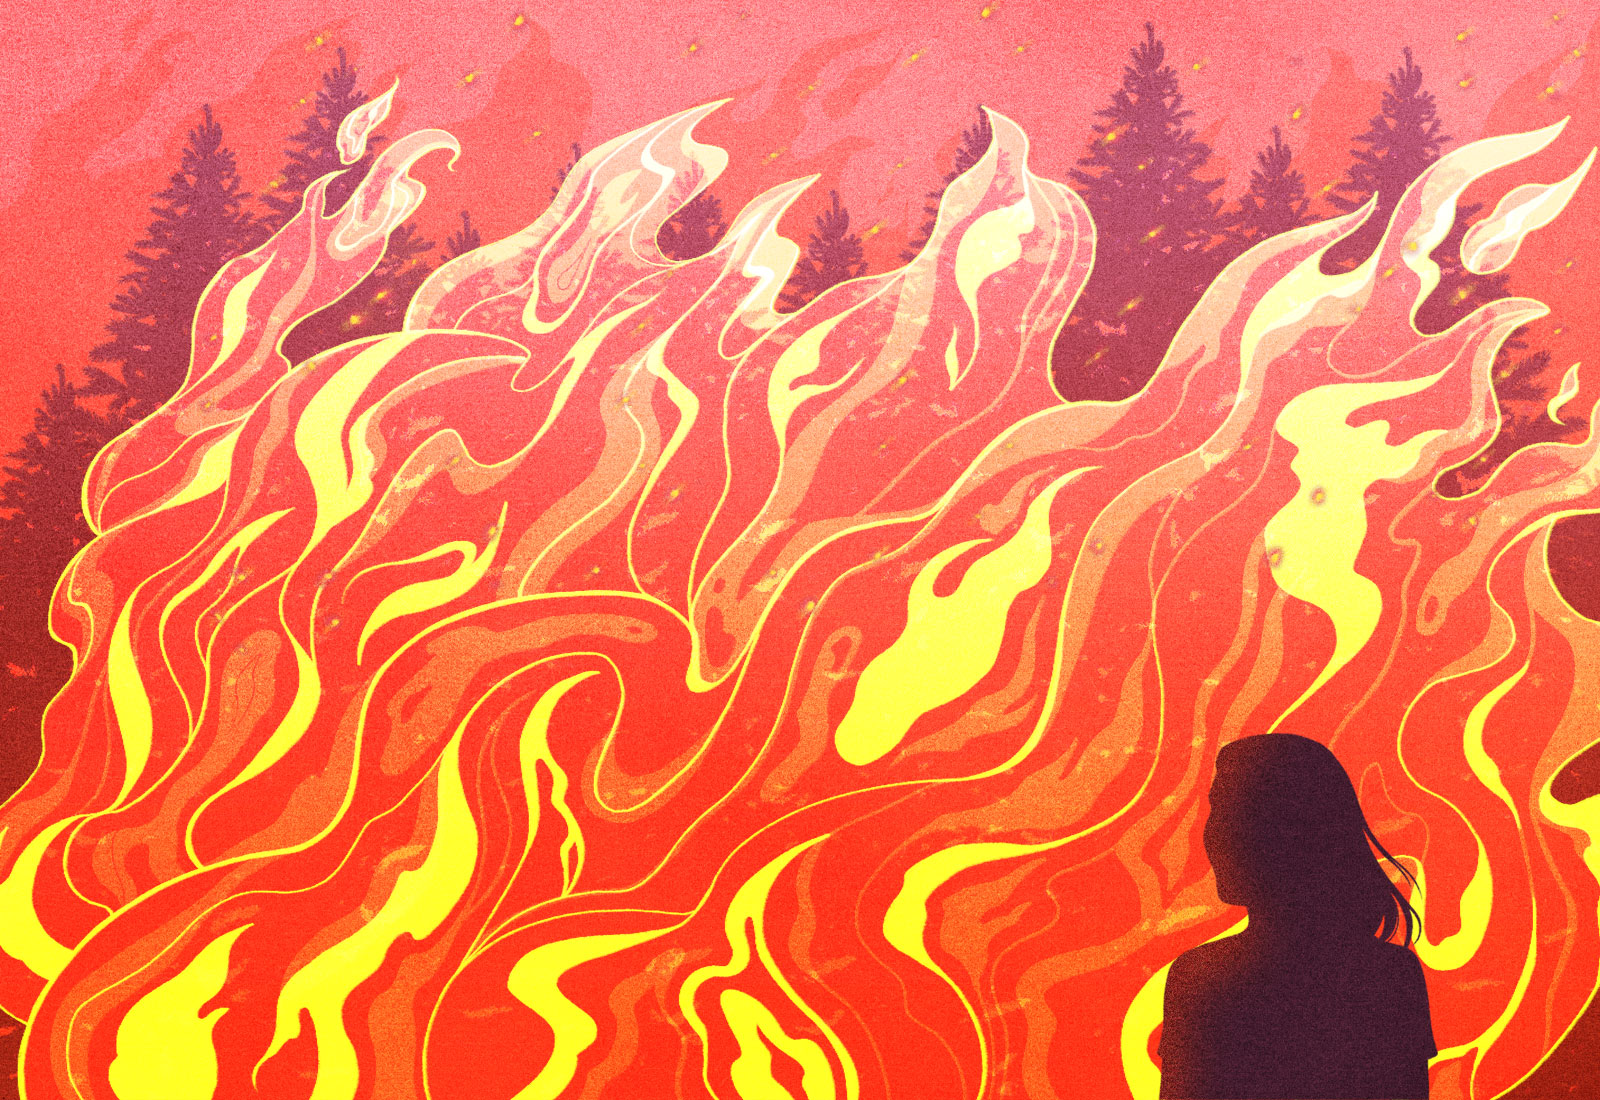 Illustration: silhouette of a woman looking at a large wildfire